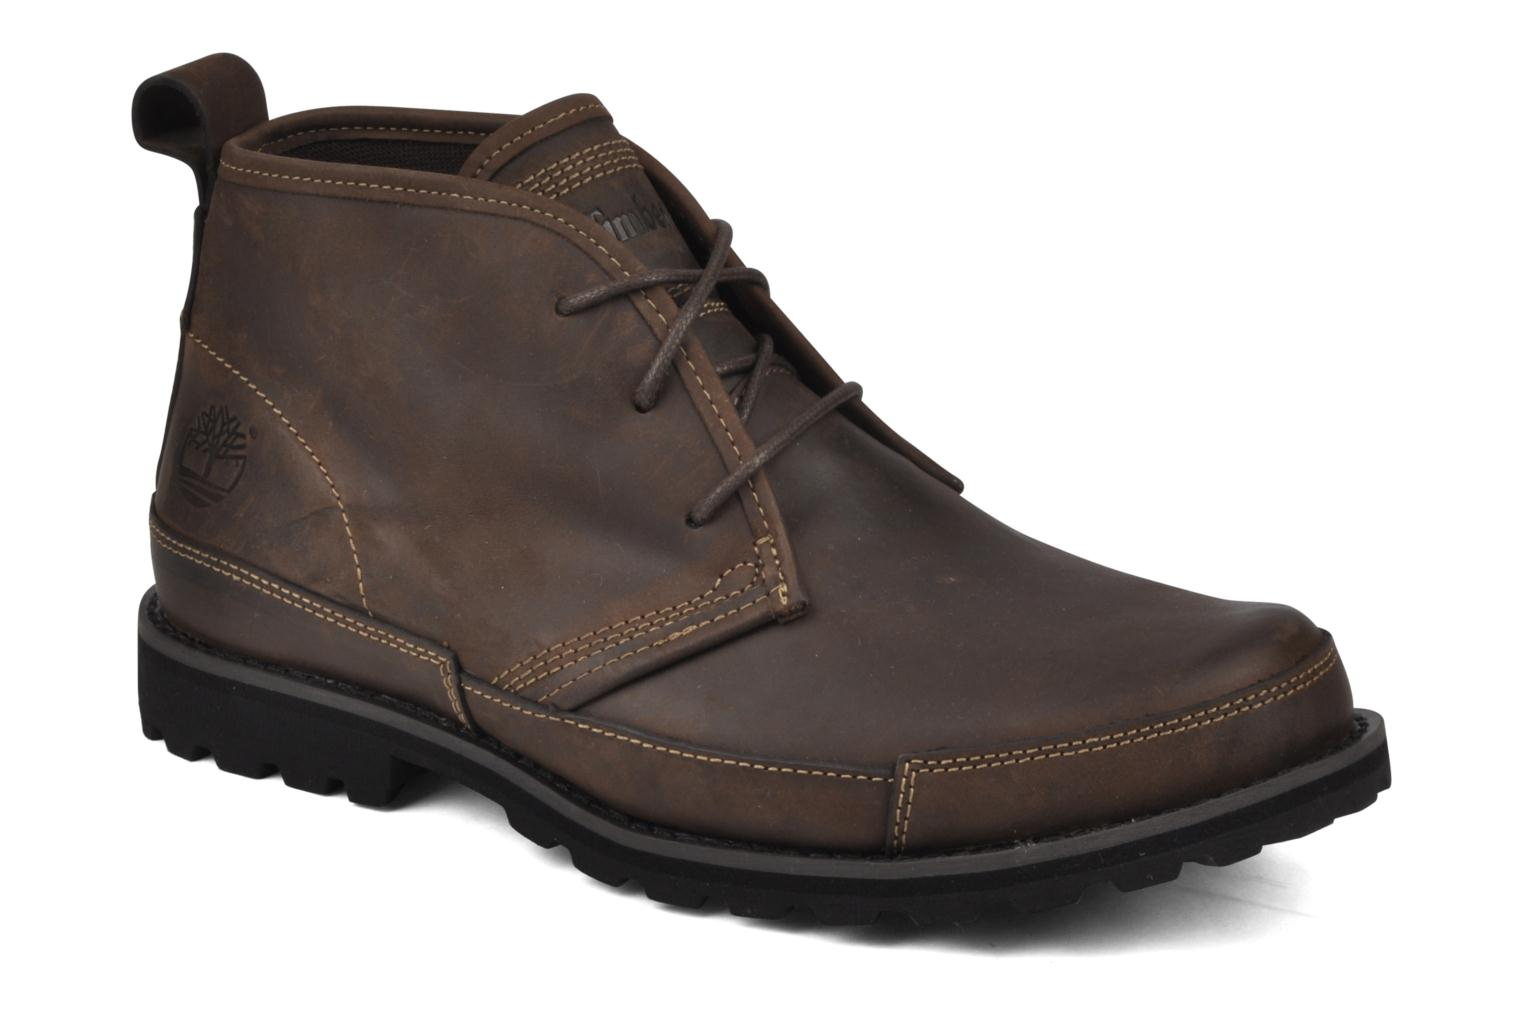 Earthkeepers Barentsburg Leather Chukka